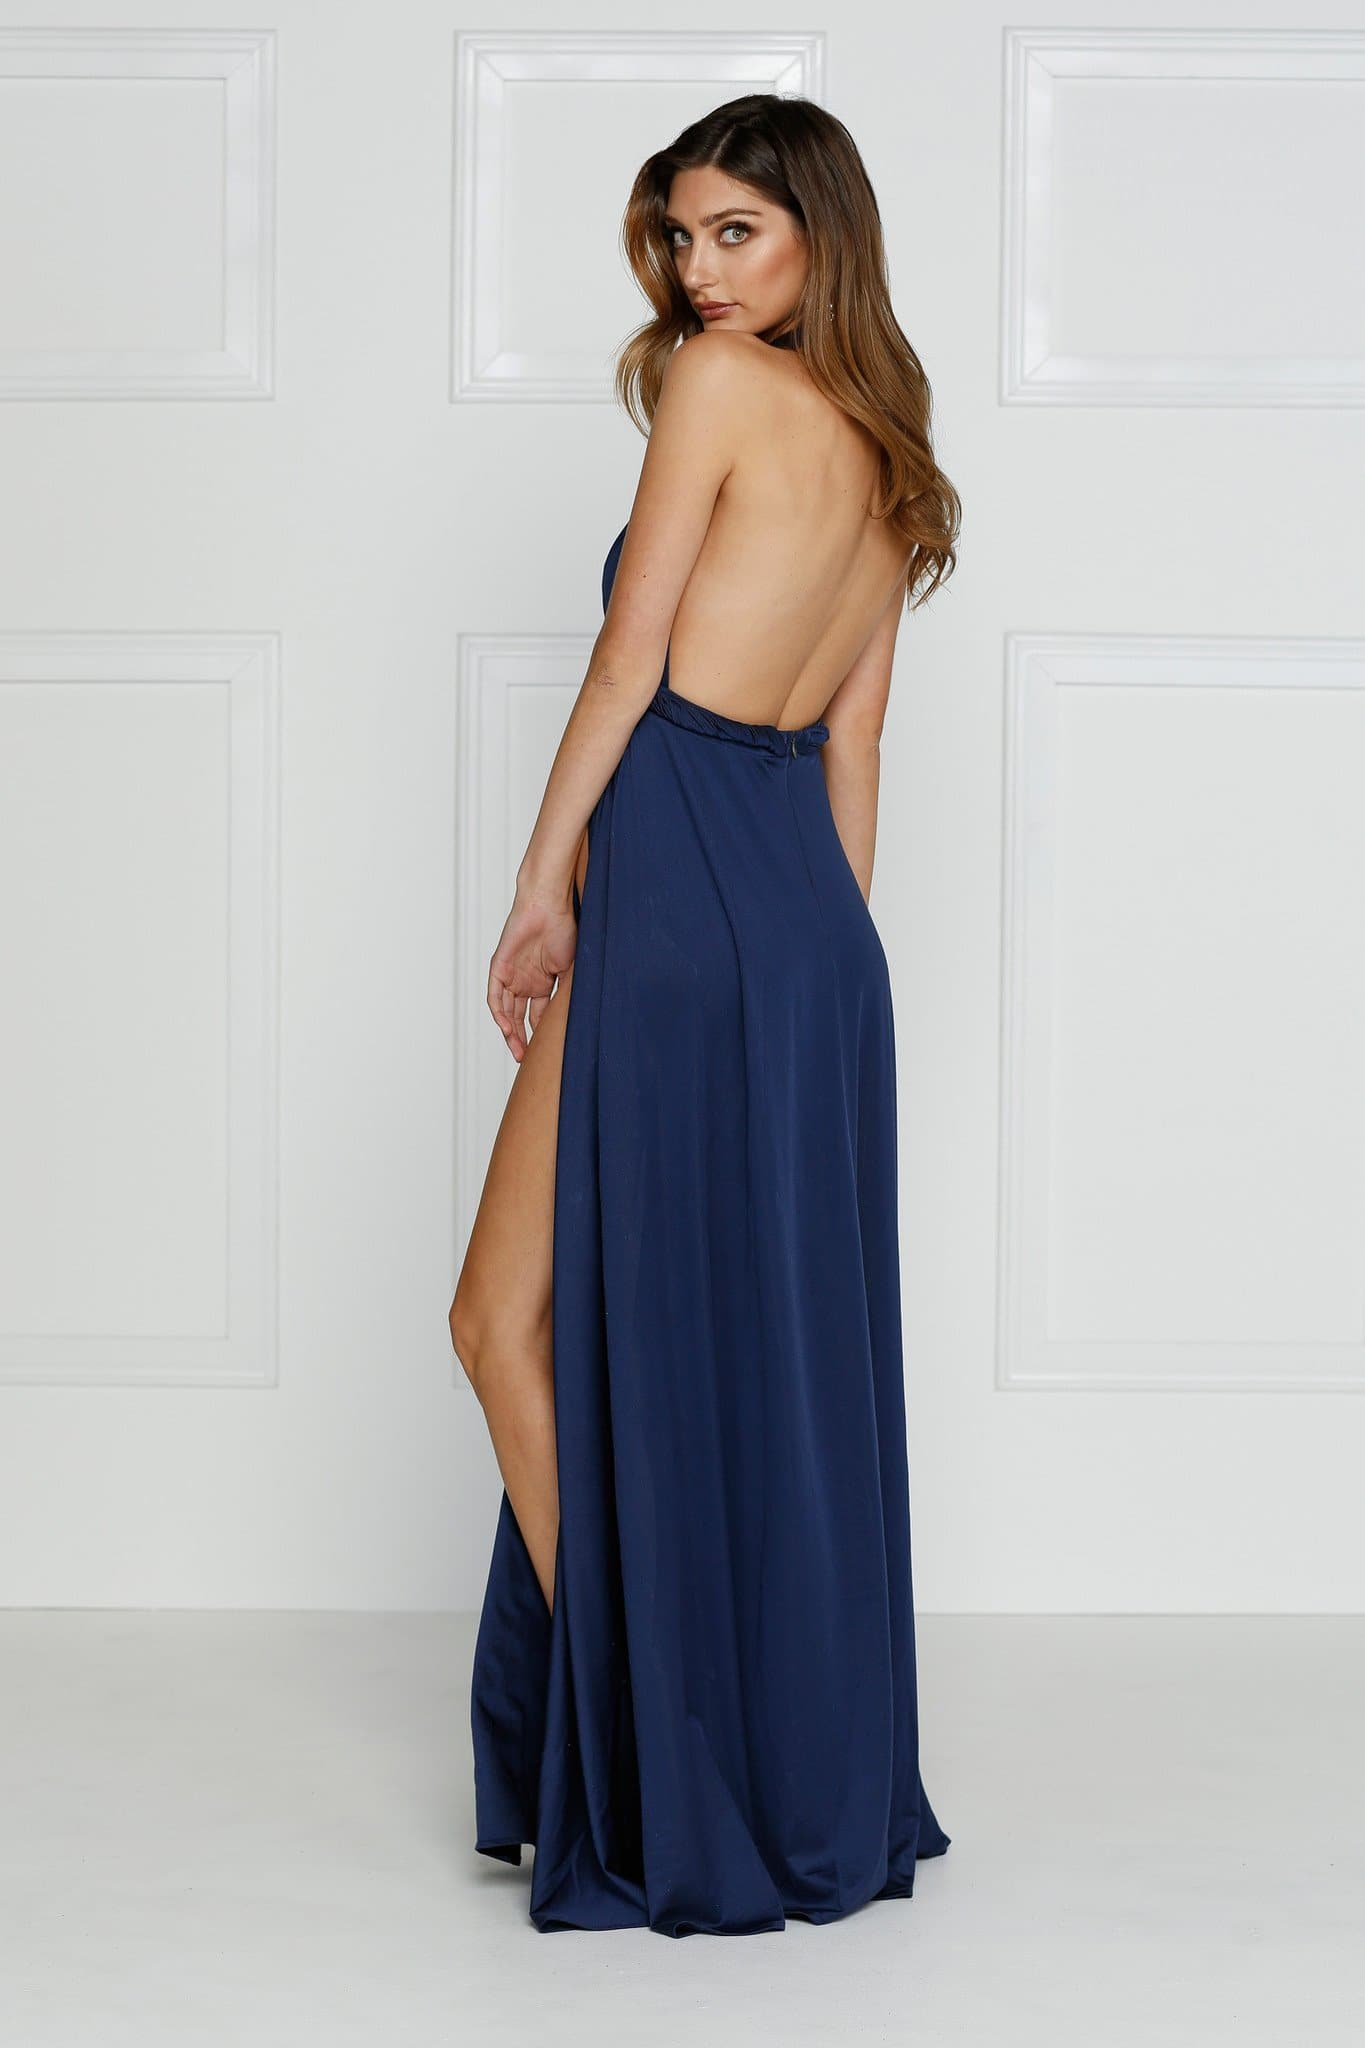 Catalina Luxe - Navy Jersey Gown with Plunge Neckline & Side Slits